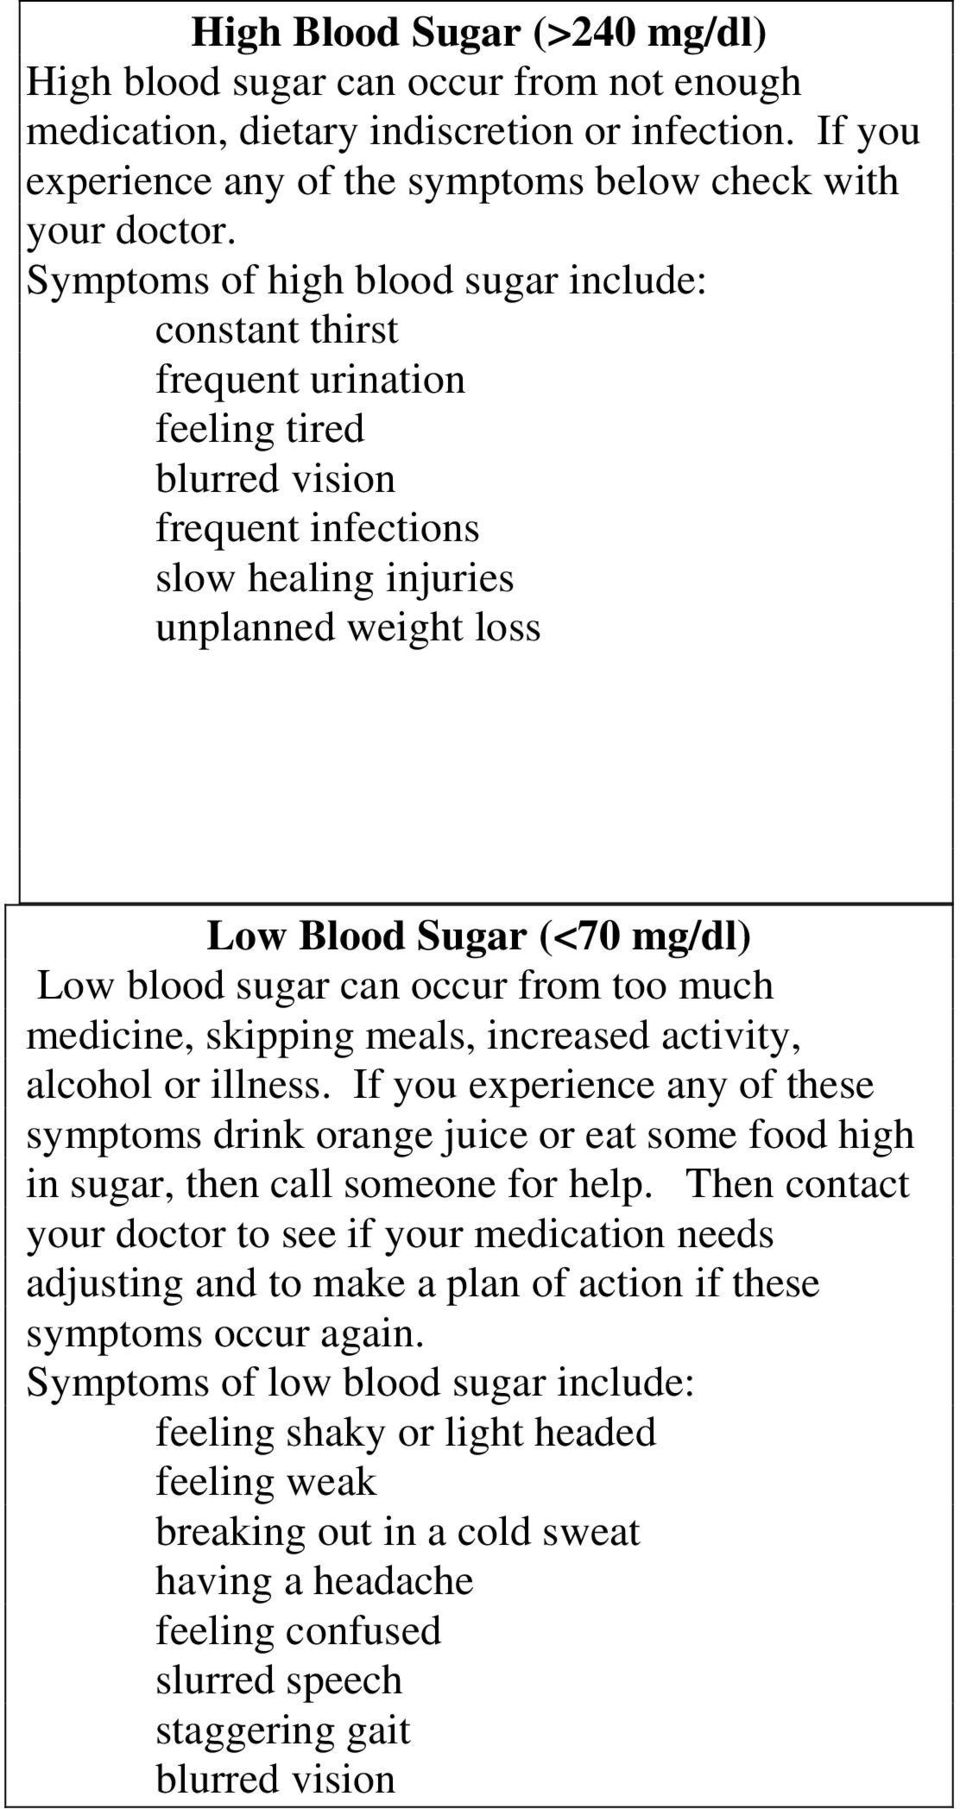 blood sugar can occur from too much medicine, skipping meals, increased activity, alcohol or illness.